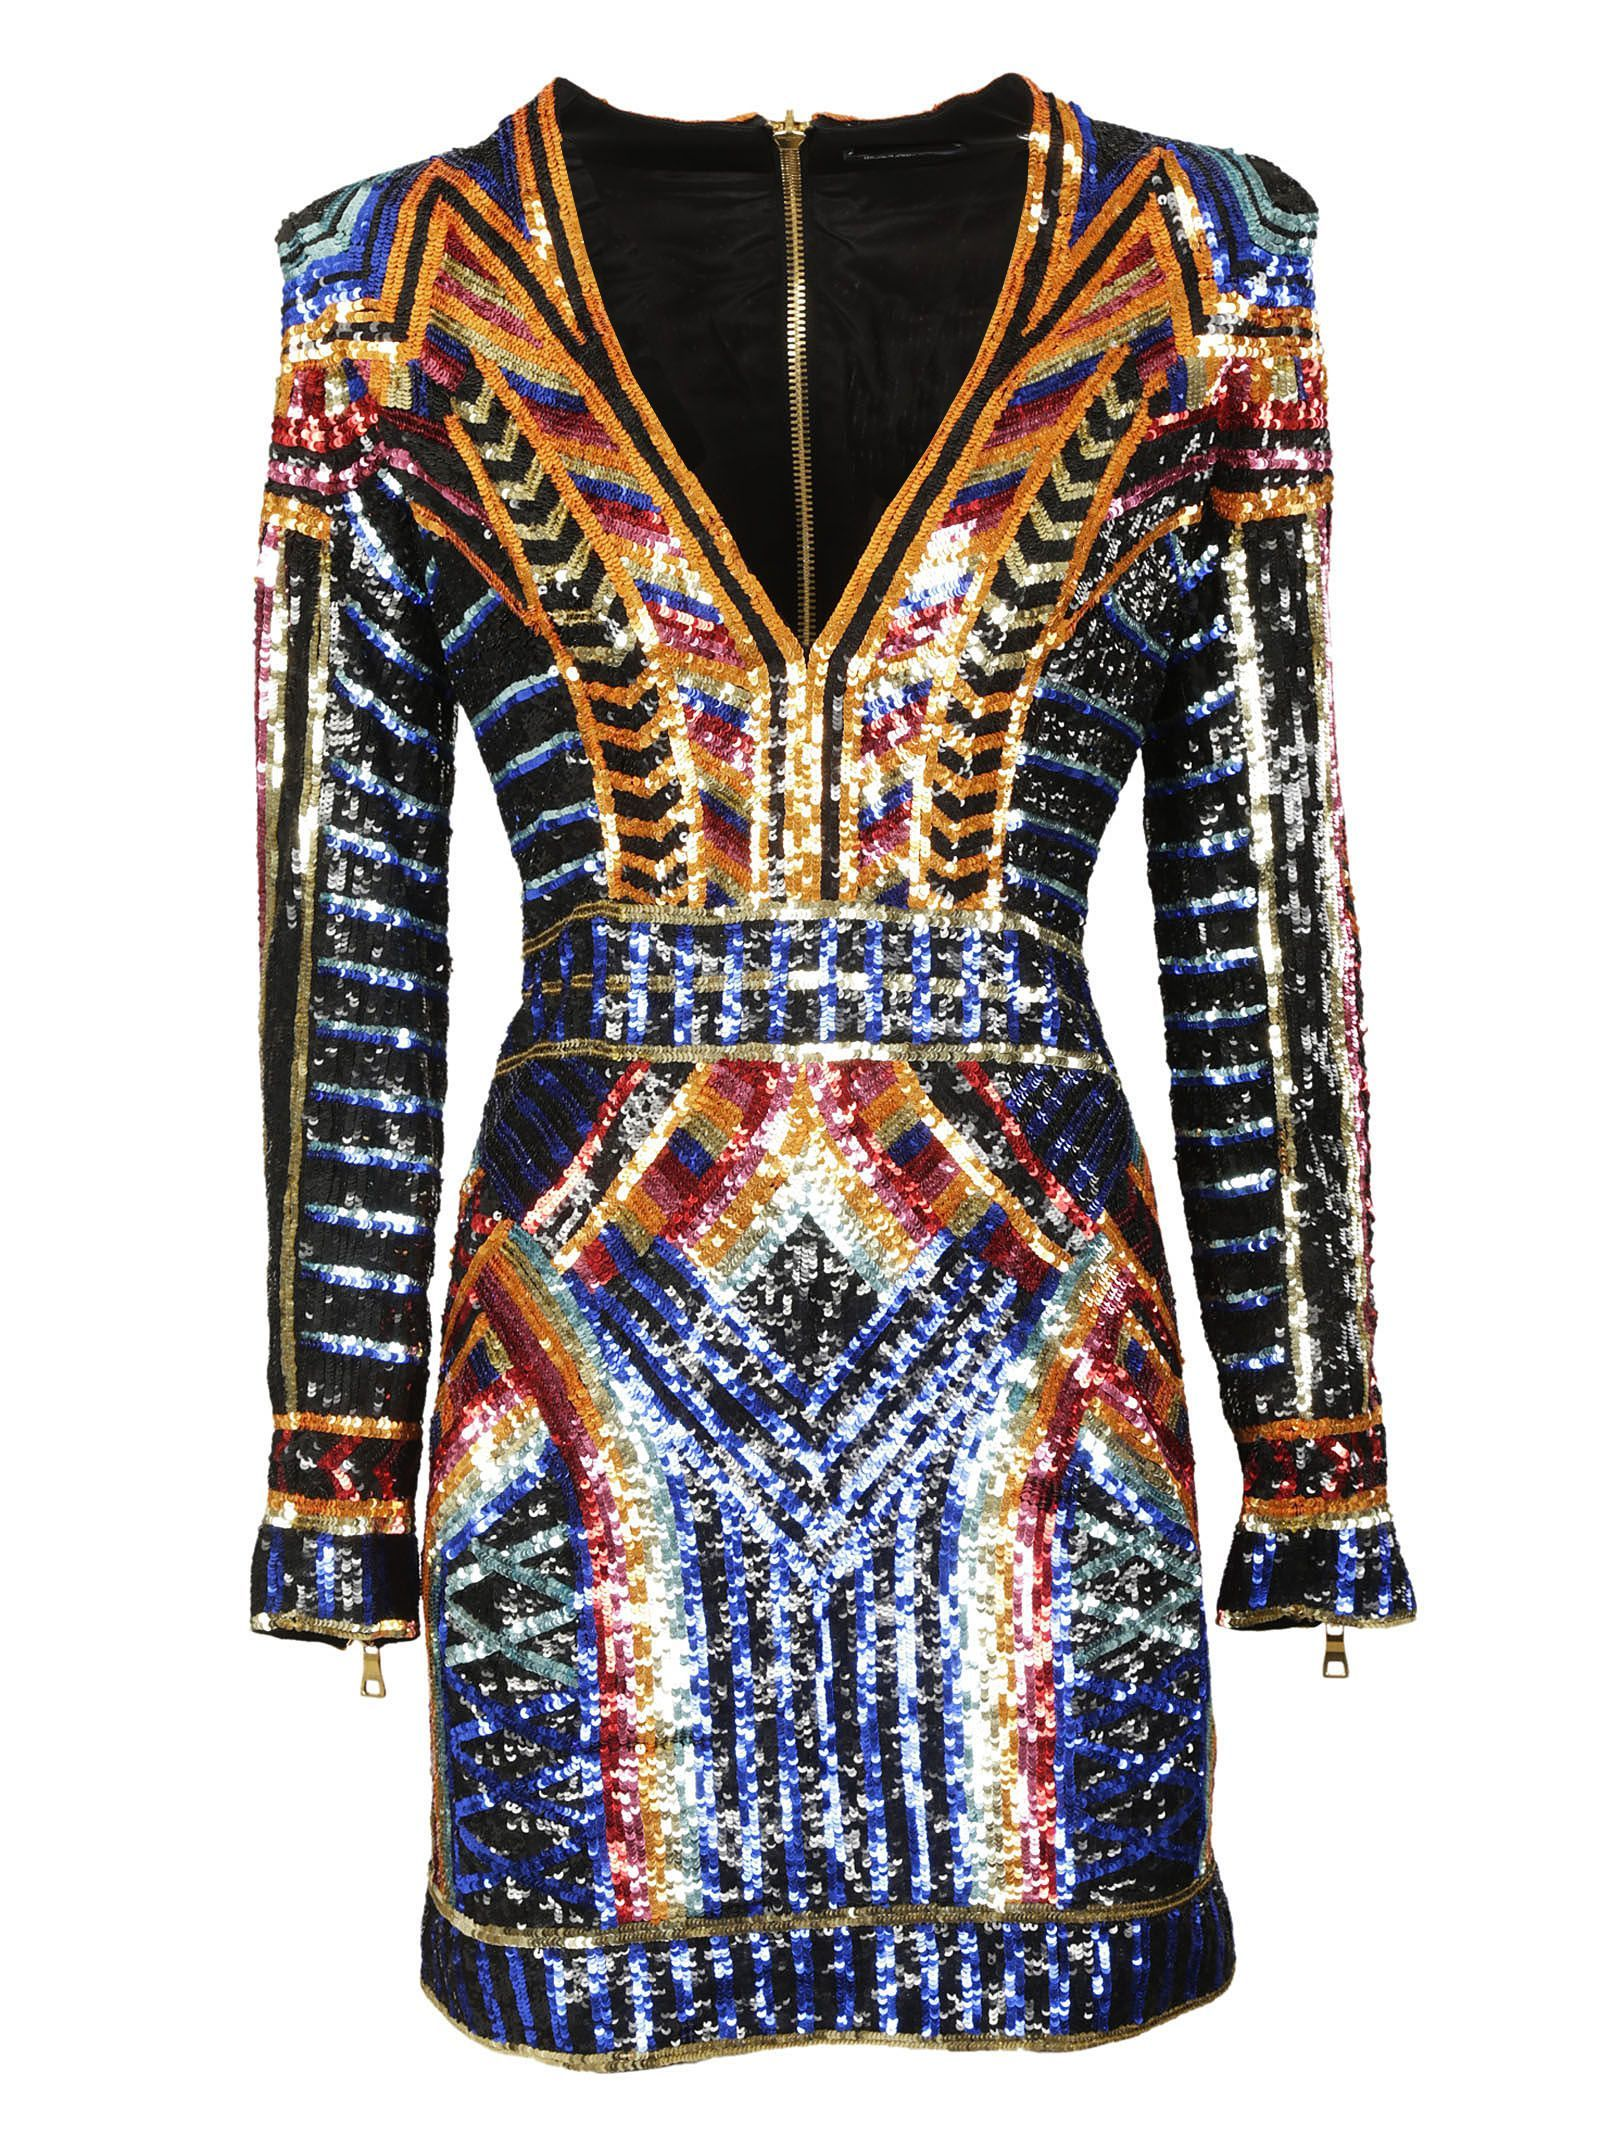 8b40732d Sequin Dress from Balmain: Multicolor Sequin Dress with v-shaped neck, long  sleeves